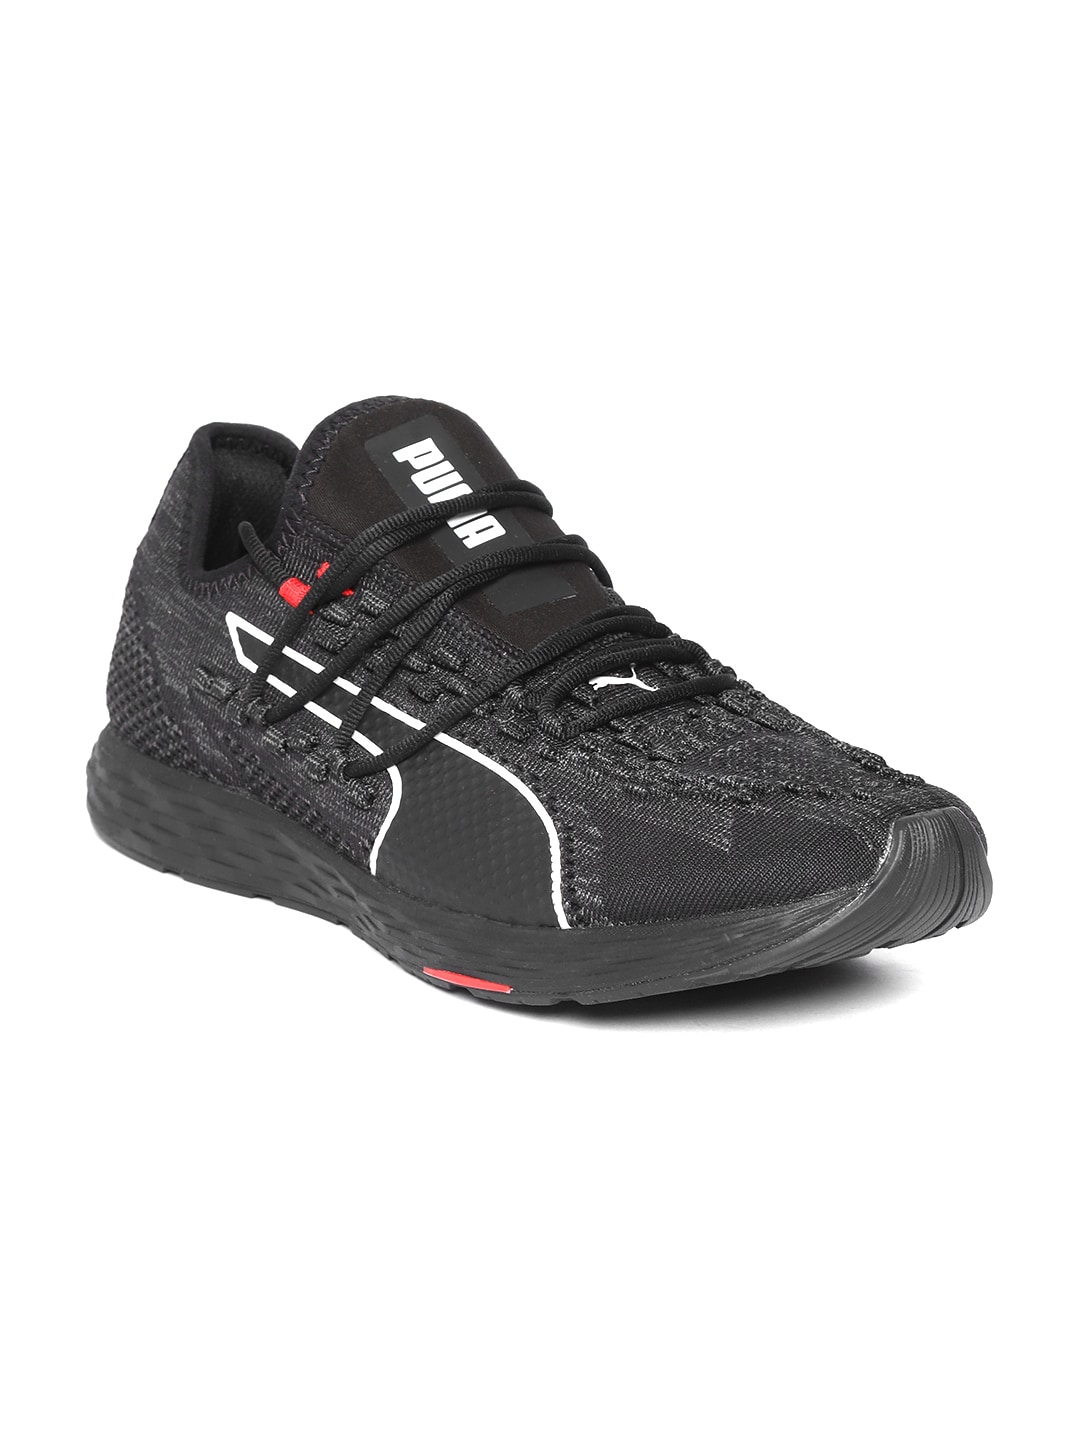 Sports Shoes For Menamp; Sport Women OnlineMyntra Buy doerBxWC